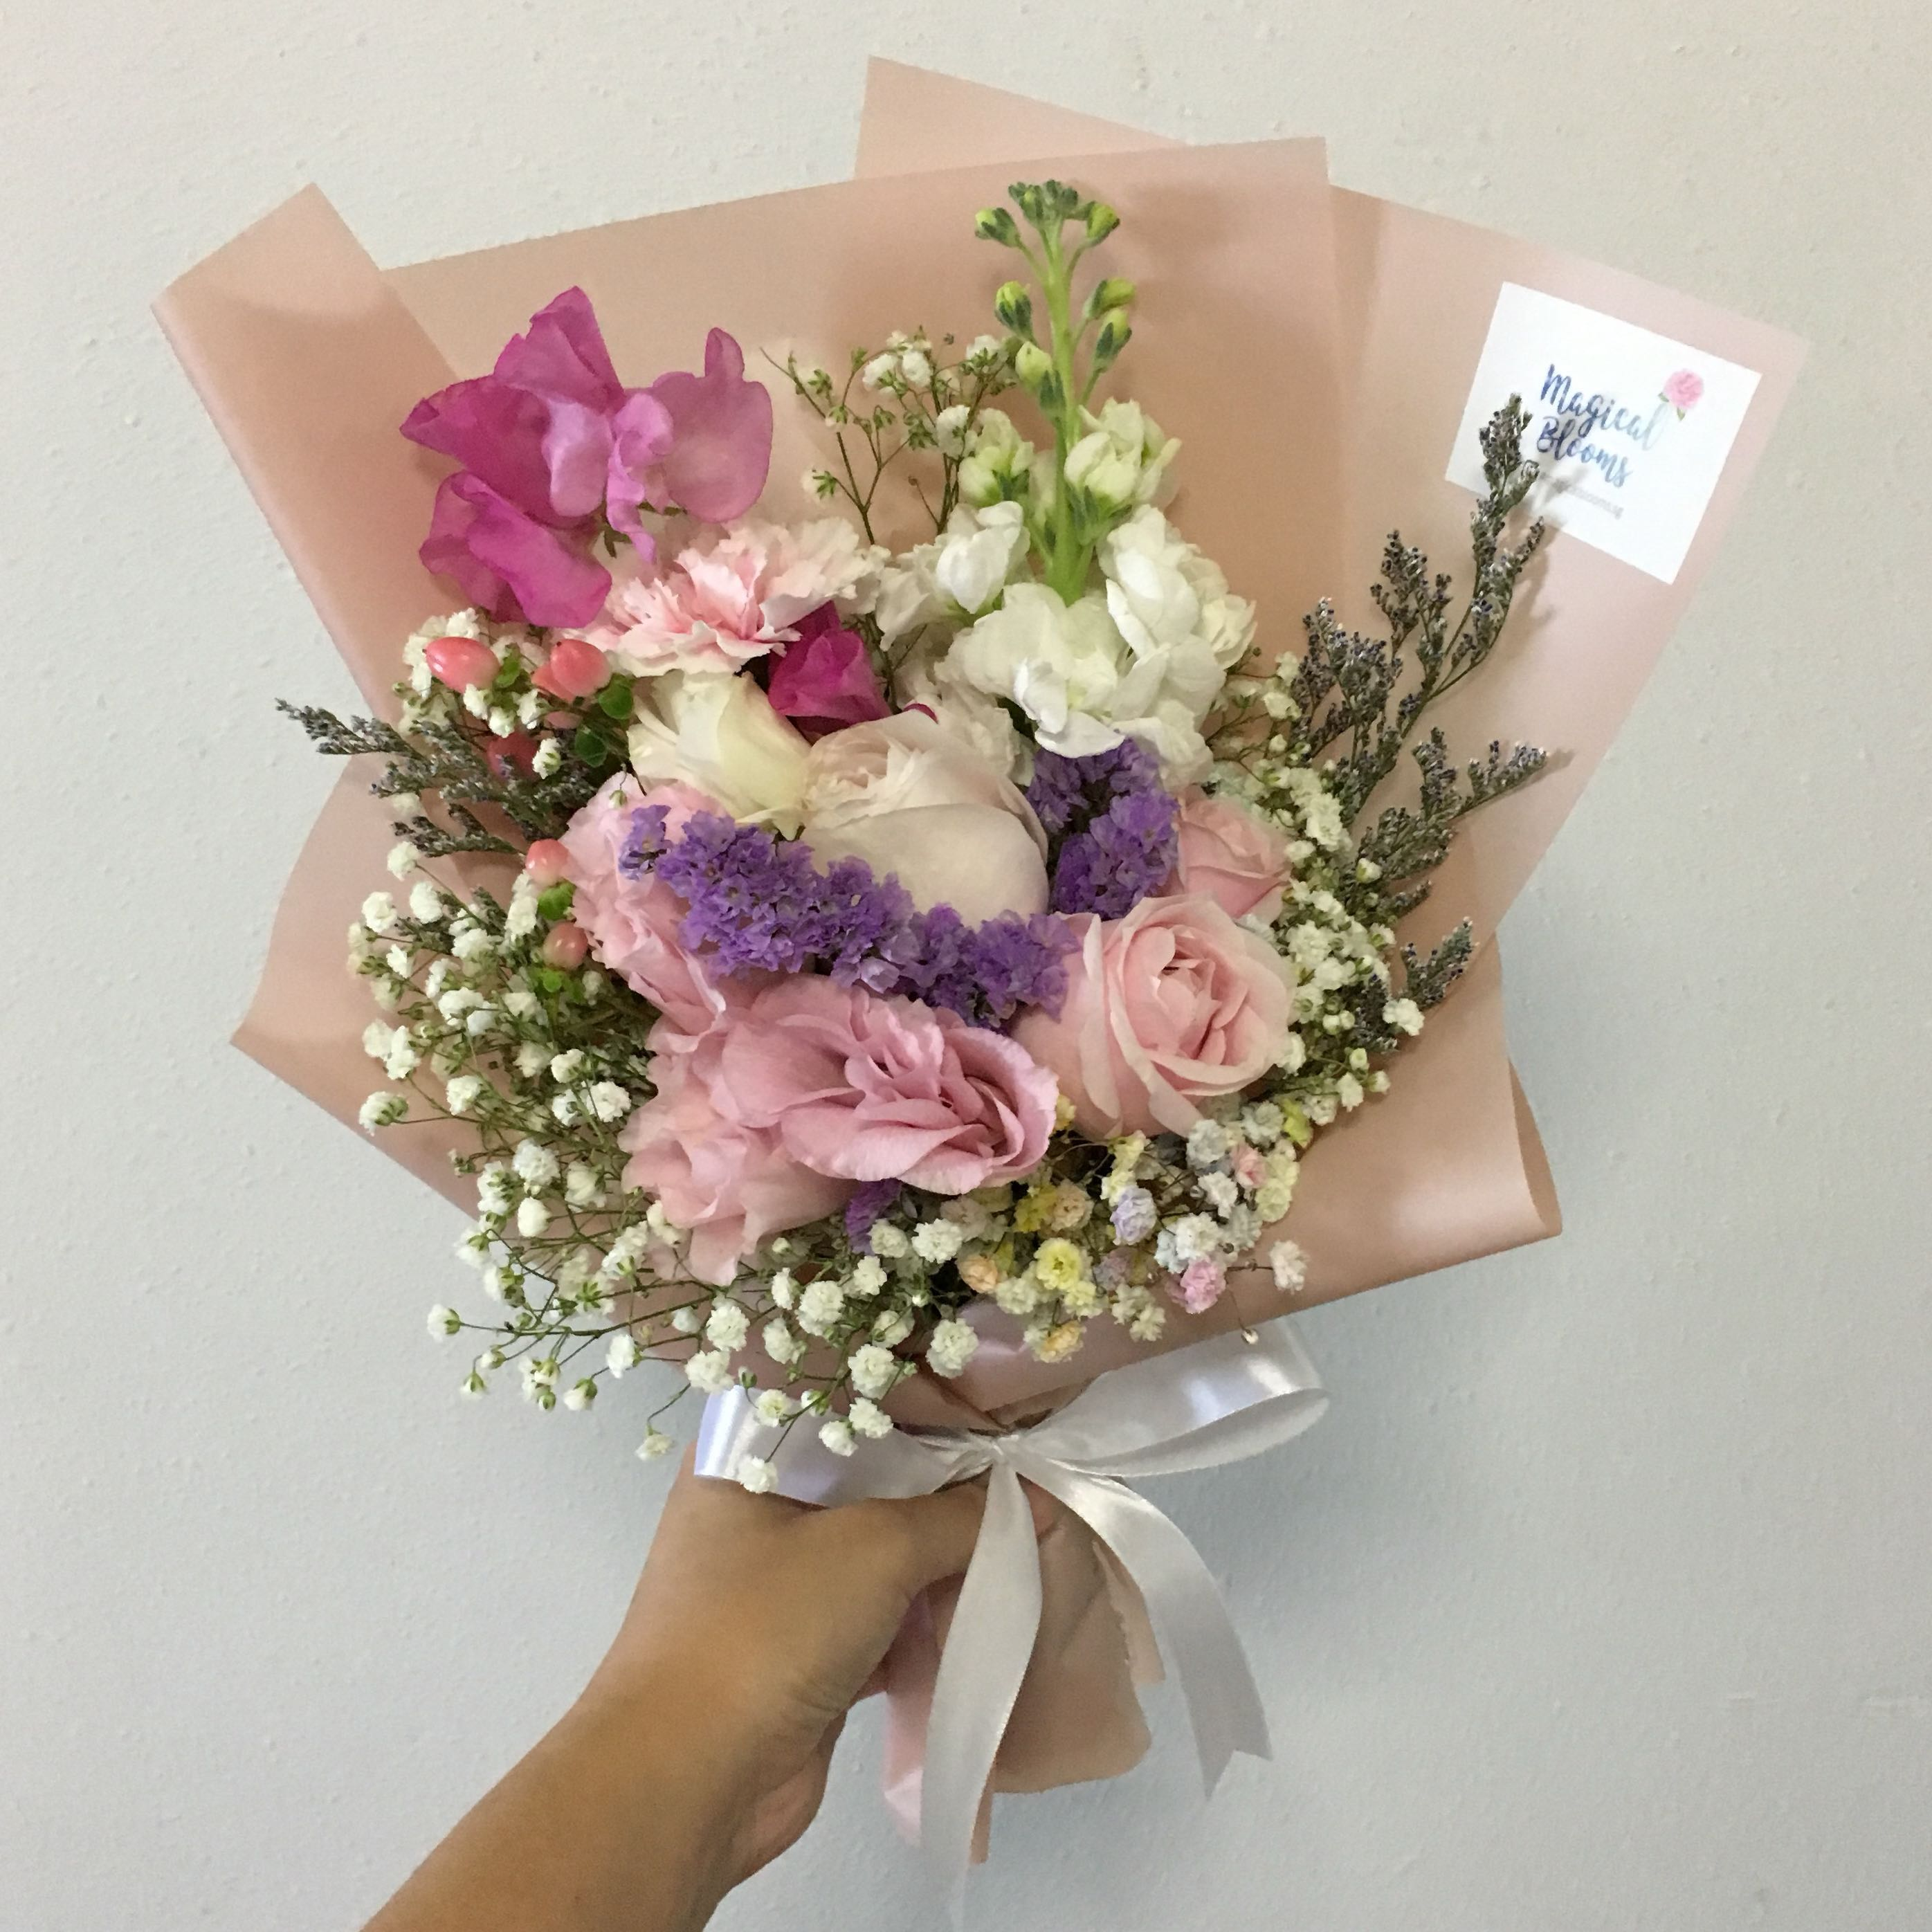 Pastel mix flower bouquet of roses and mix fillers bulletin board pastel mix flower bouquet of roses and mix fillers bulletin board preorders on carousell izmirmasajfo